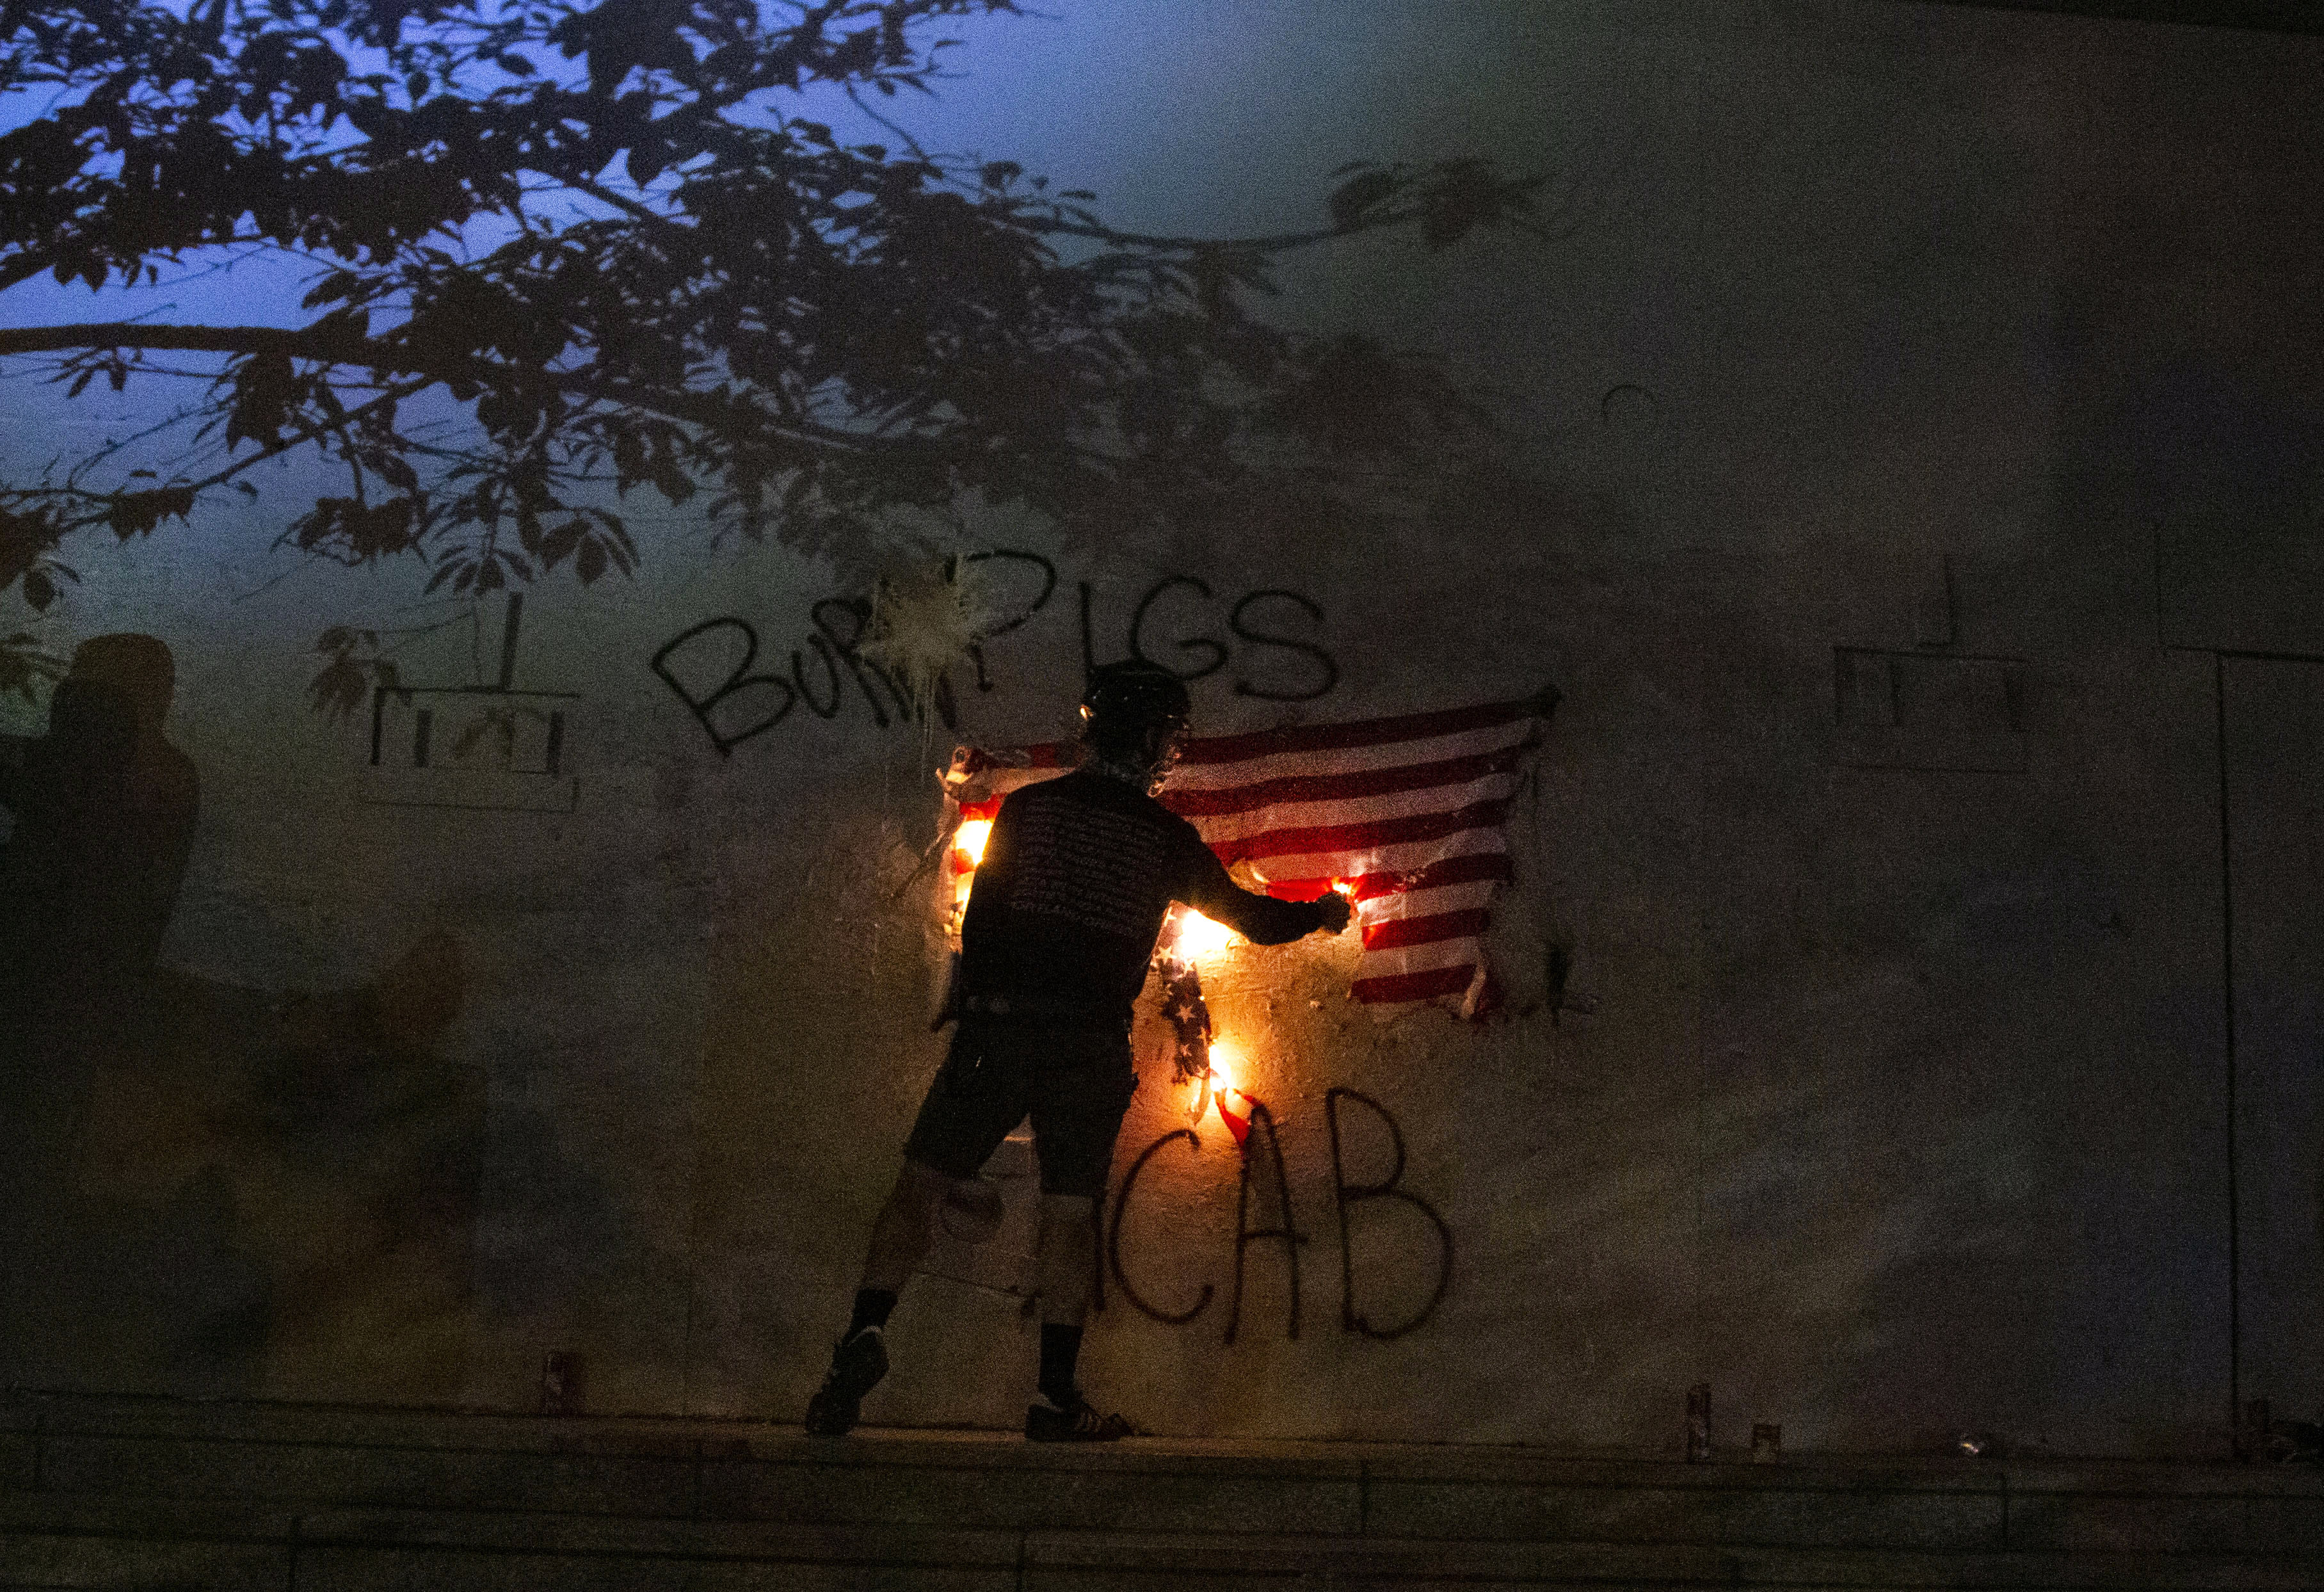 Protesters burn an American flag in downtown Portland, Ore., July 4, 2020. Portland police say more than 12 people were arrested early Sunday after throwing fireworks and mortars as they clashed with police during the latest rally decrying police brutality. (Beth Nakamura/The Oregonian via AP)